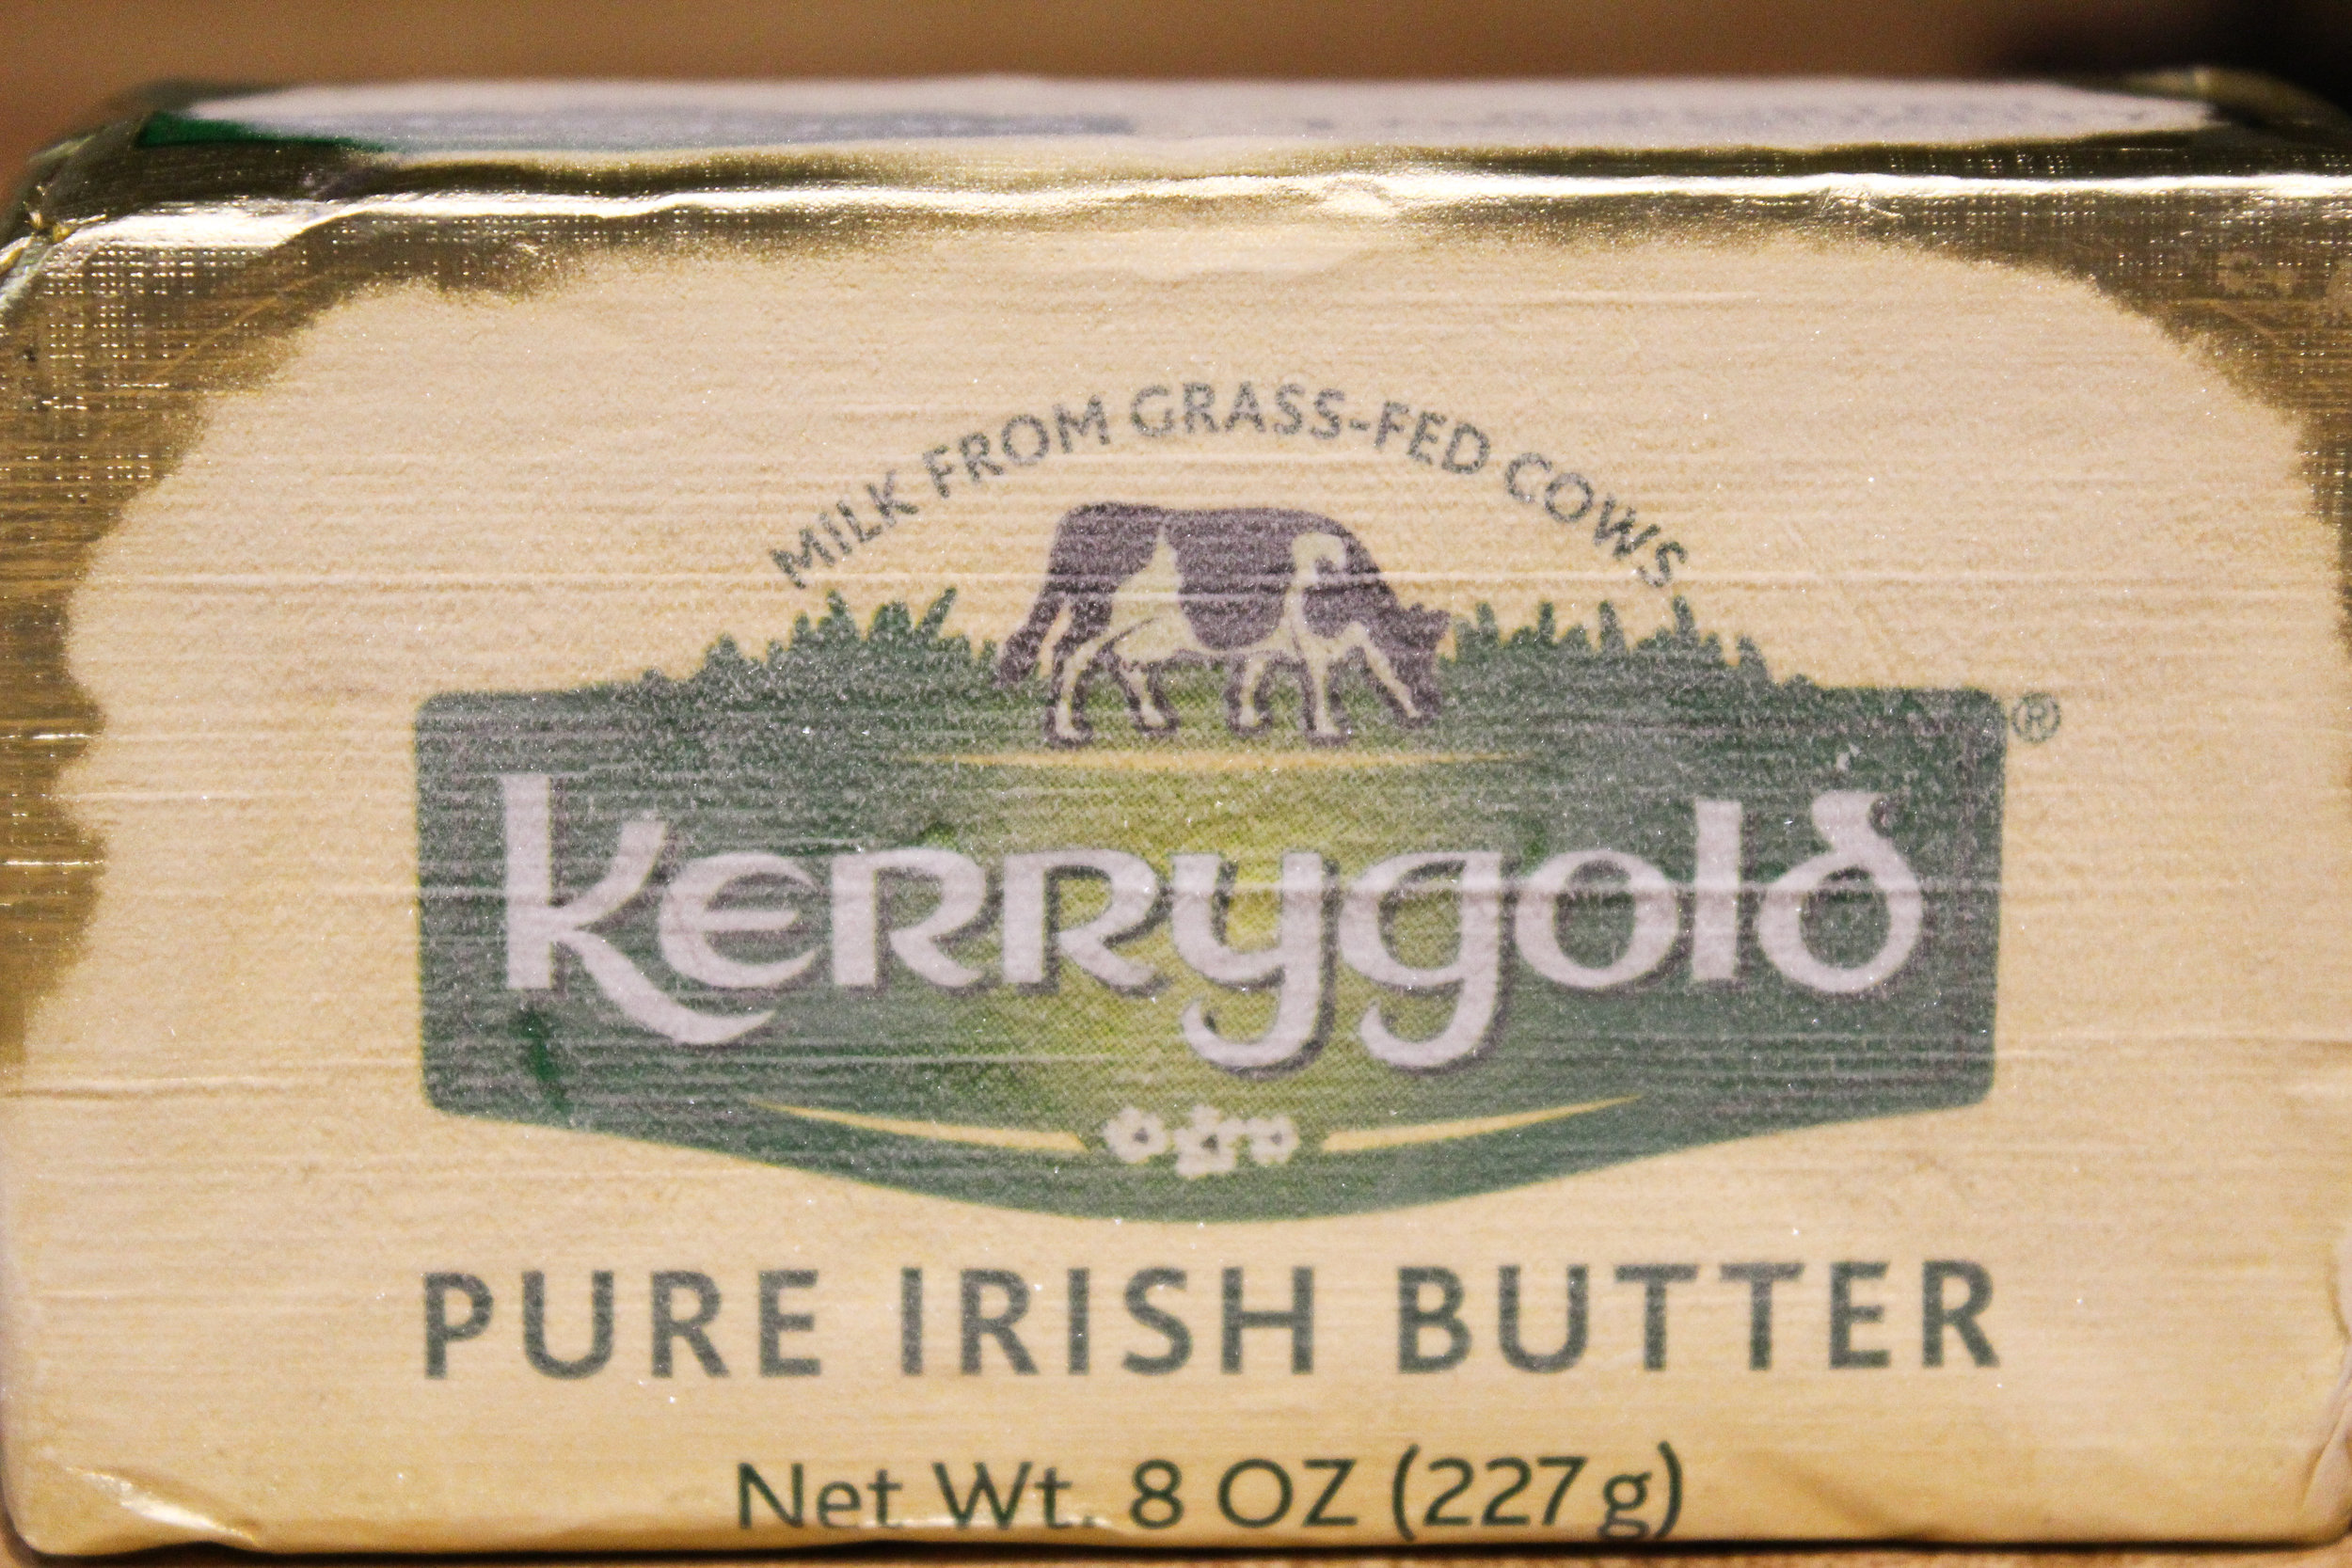 There is no butter that compares to Kerrygold grass fed butter!